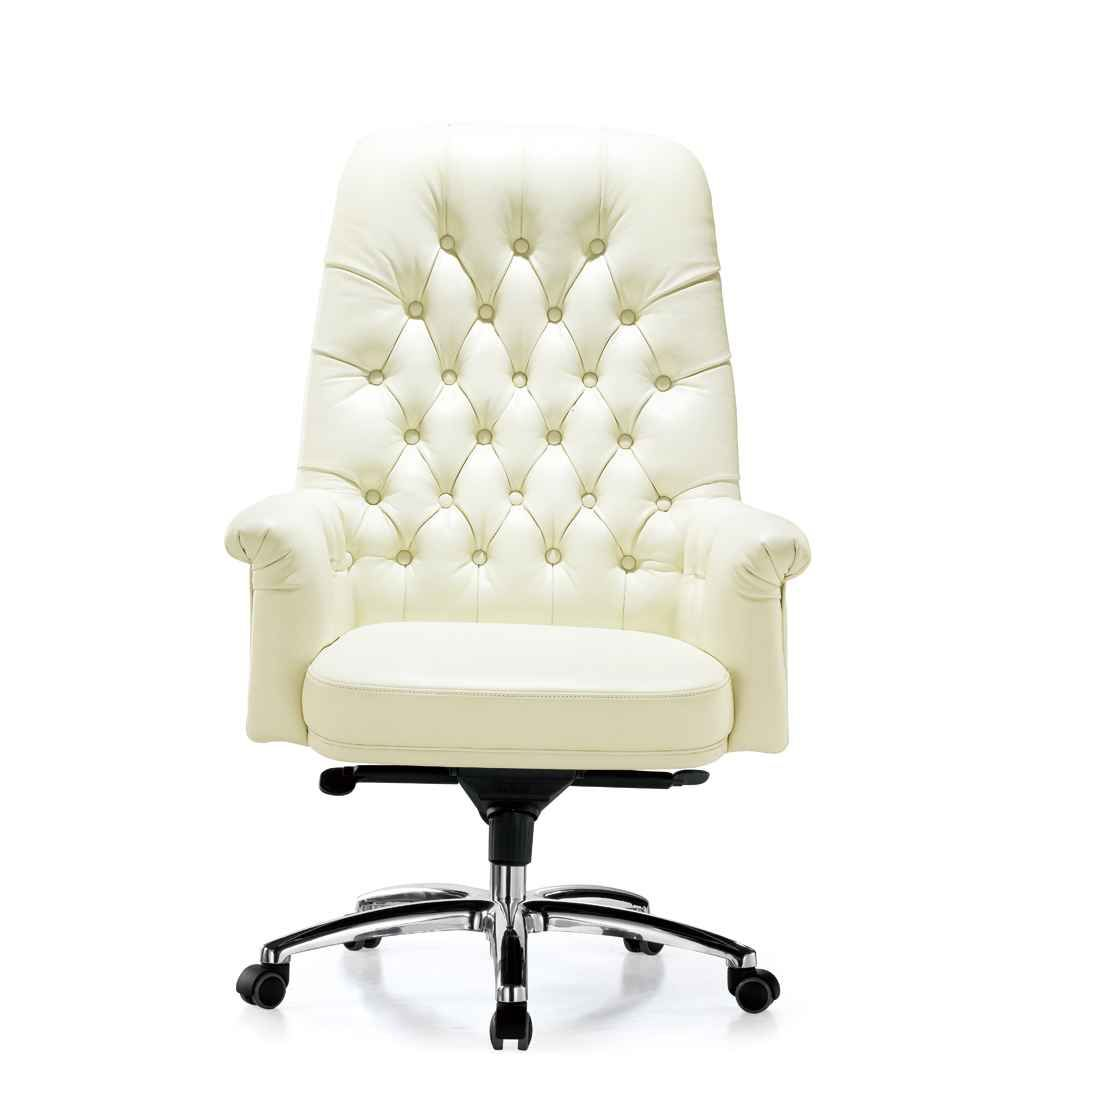 luxury office chair. swivel luxury white leather office chair comfortable and stylish the perfect combination c